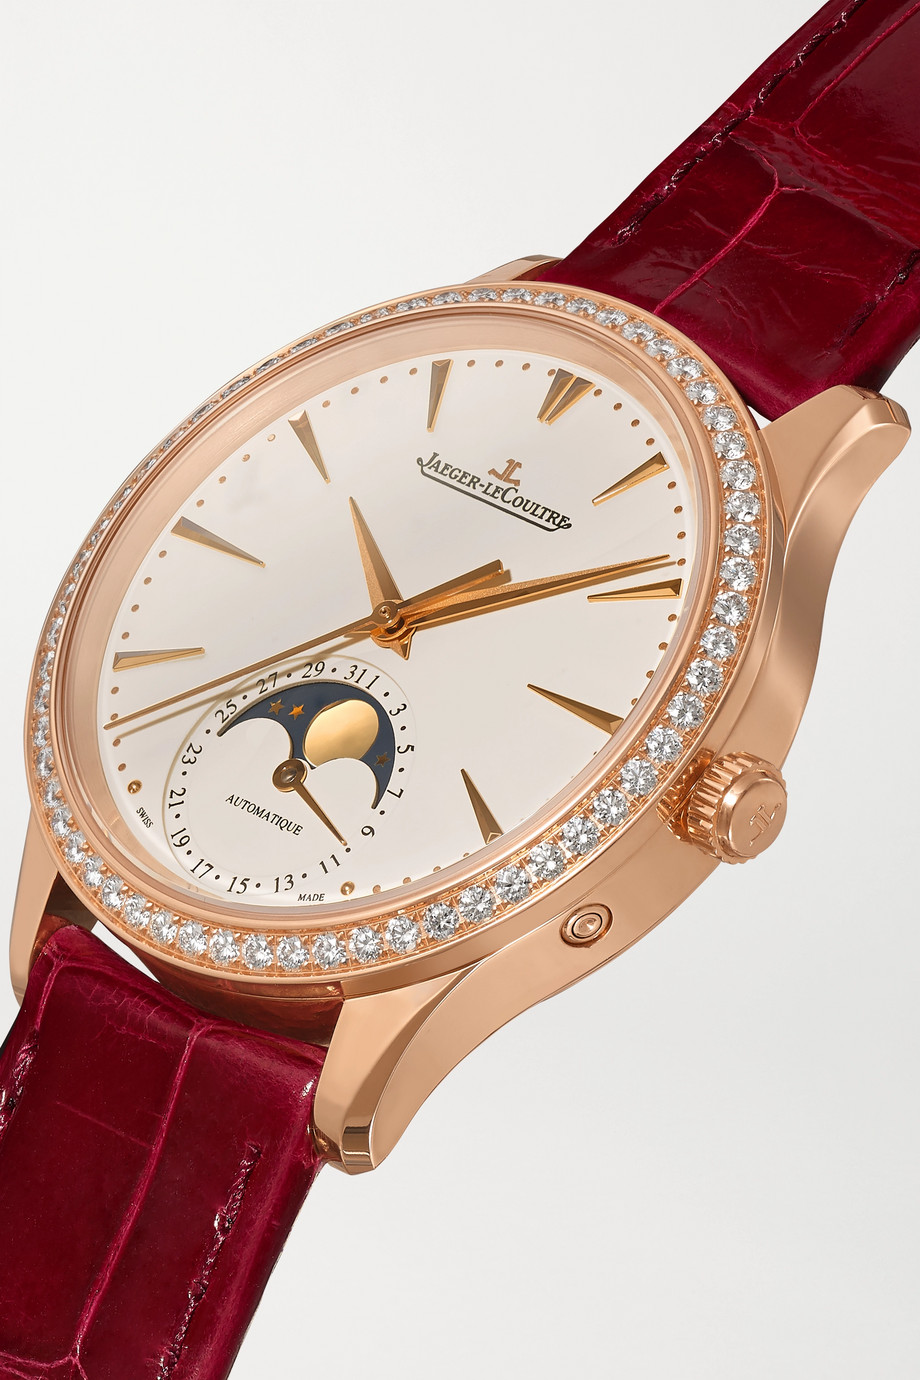 Jaeger-LeCoultre Master Ultra Thin Automatic Moon-Phase 34mm rose gold, alligator and diamond watch